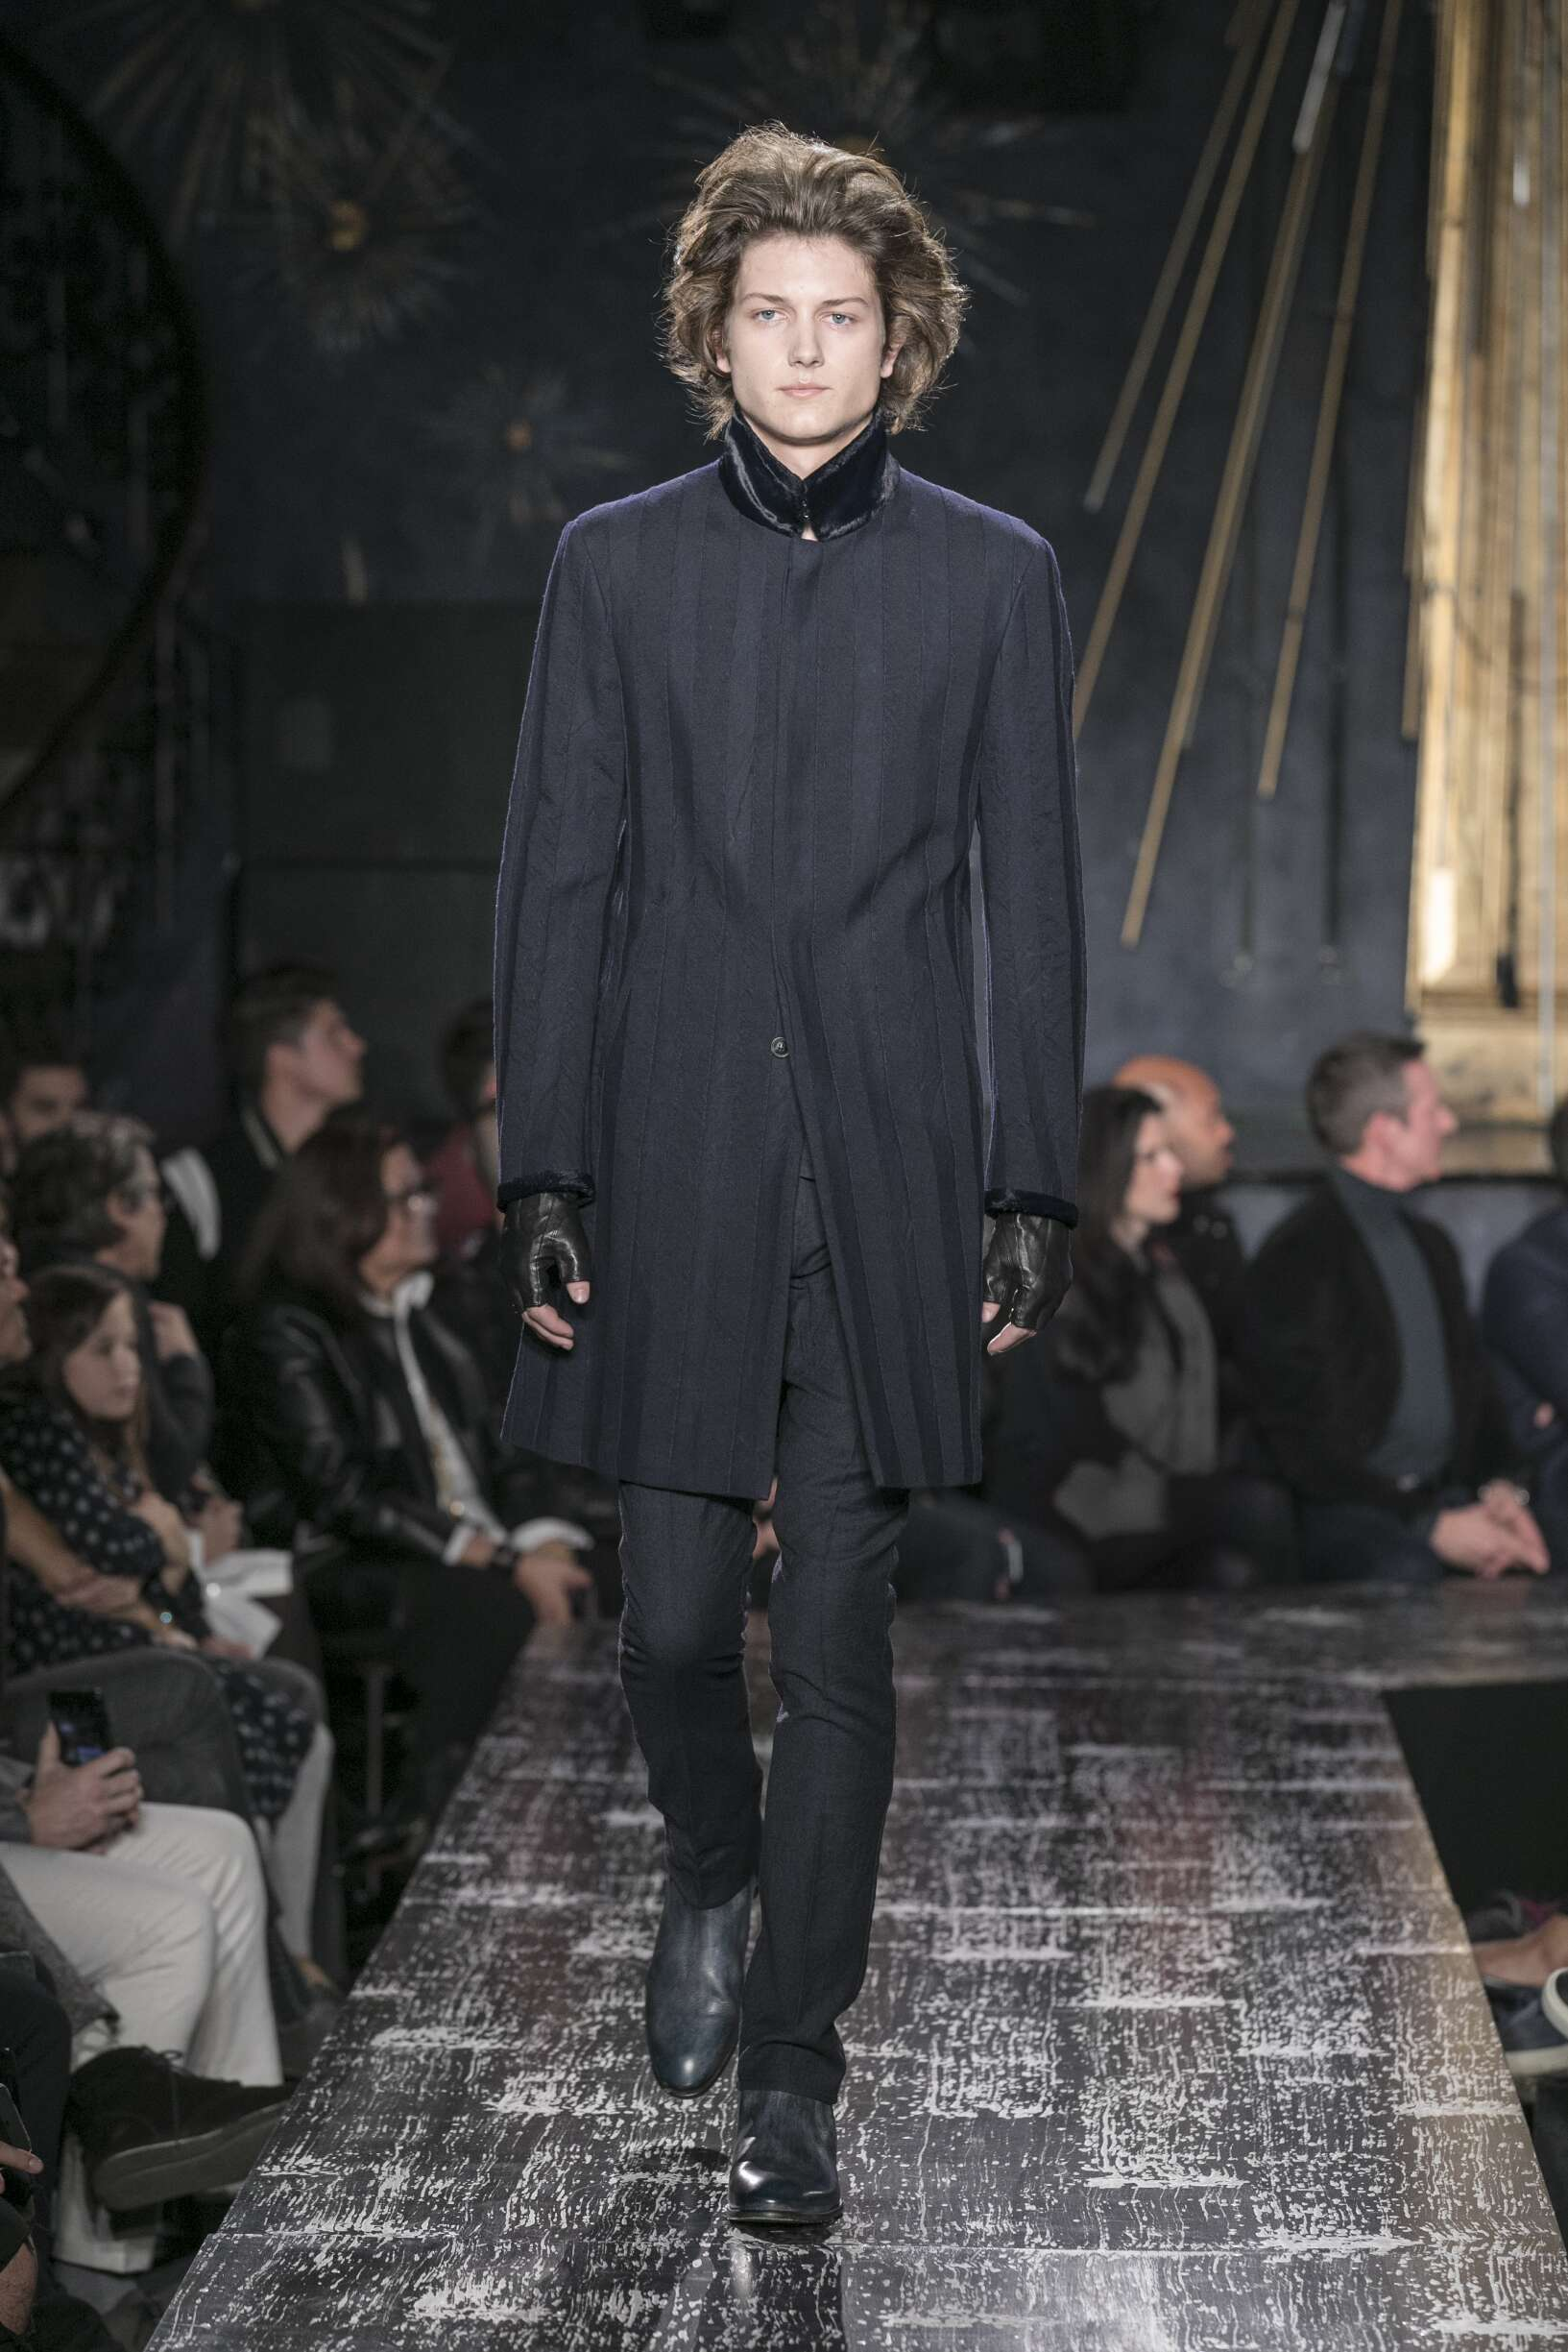 Catwalk John Varvatos Man Fashion Show Winter 2017